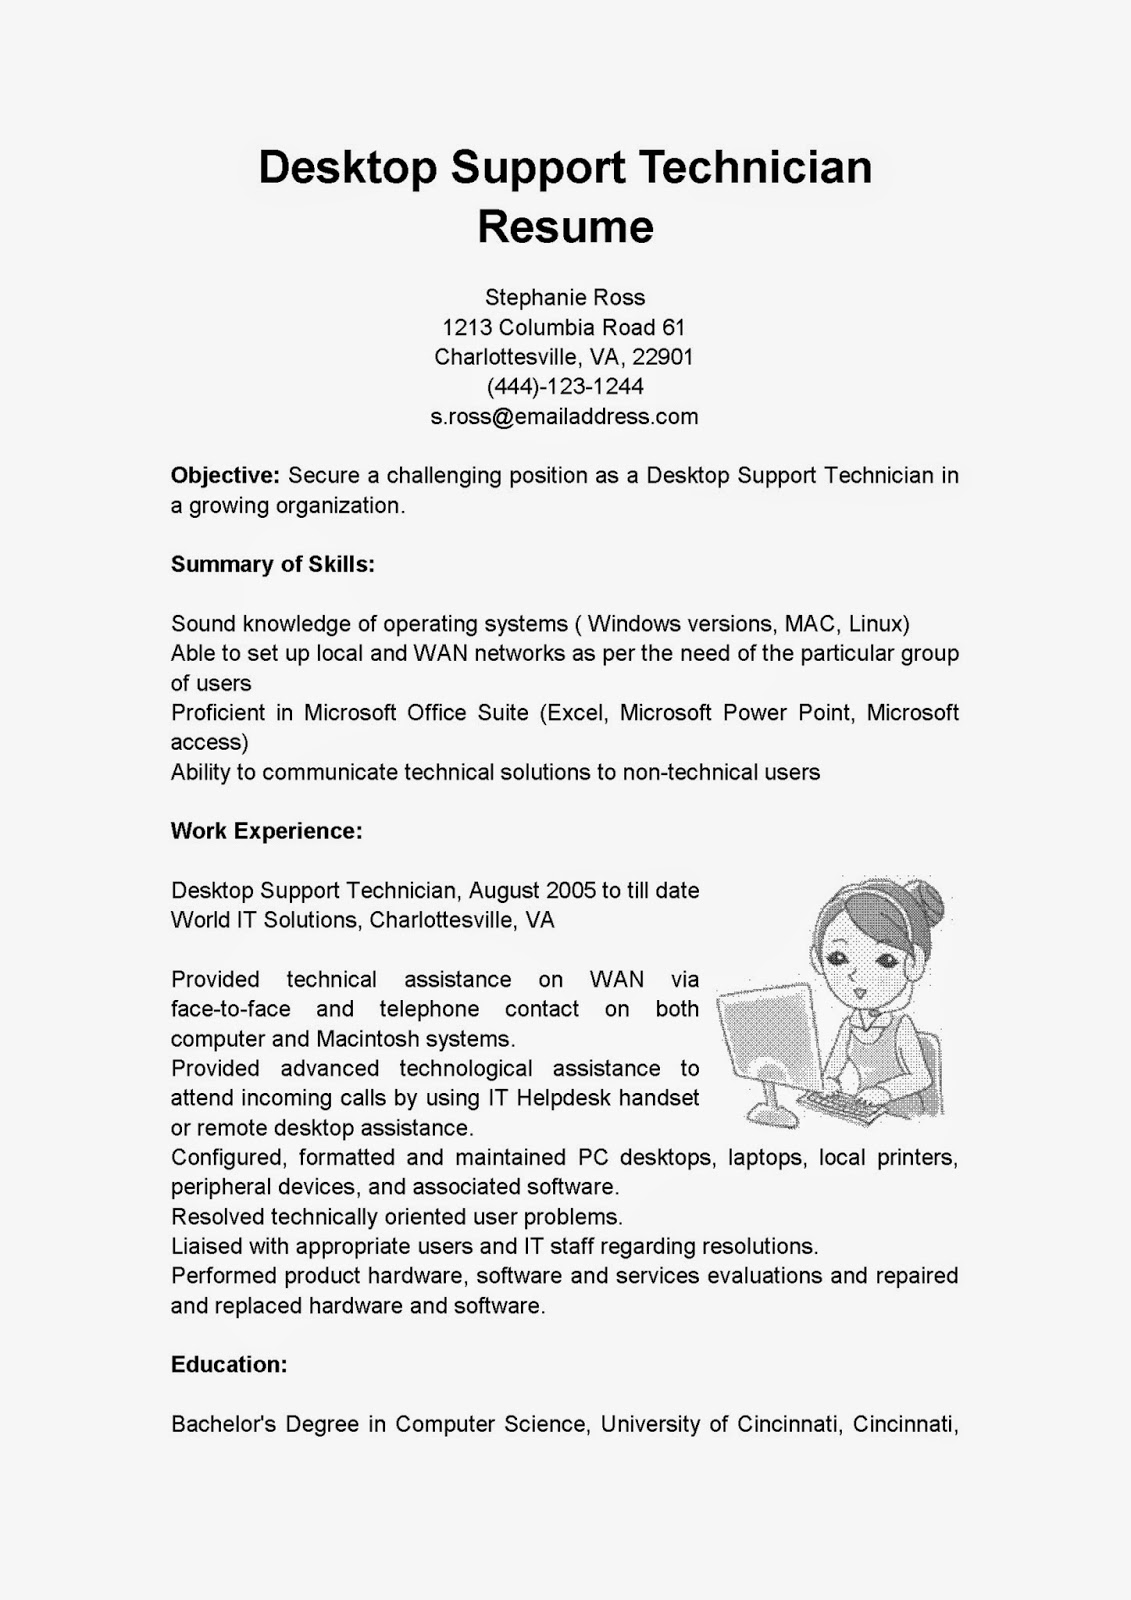 sample resume computer technician resume no experience search resumer example